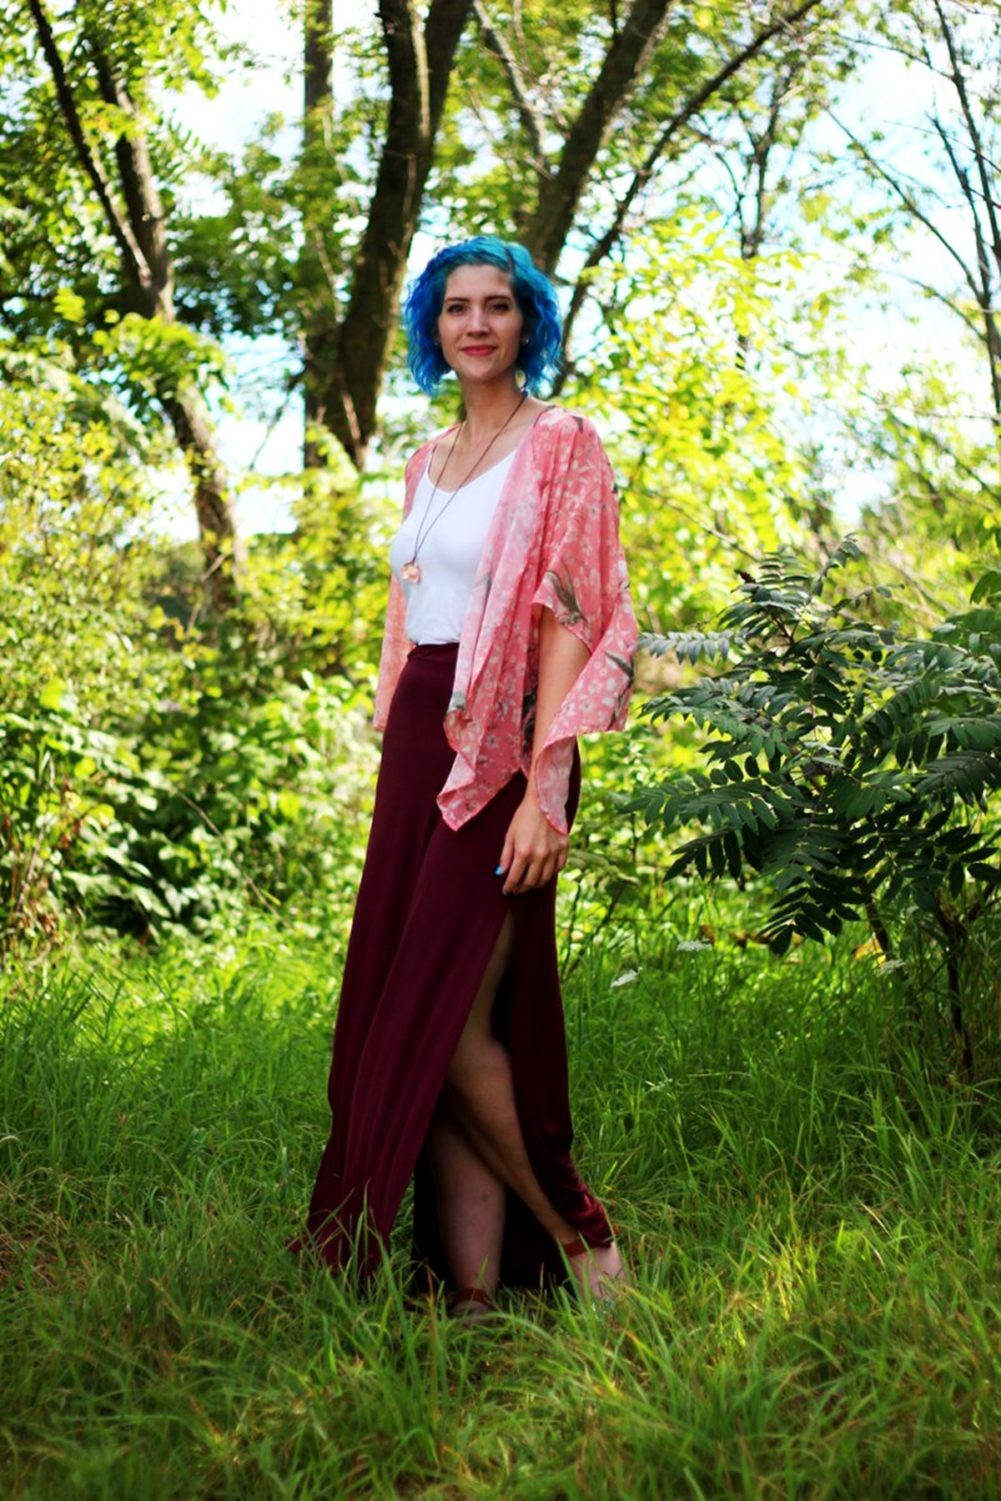 Saying Goodbye to Summer in a Pink Kimono